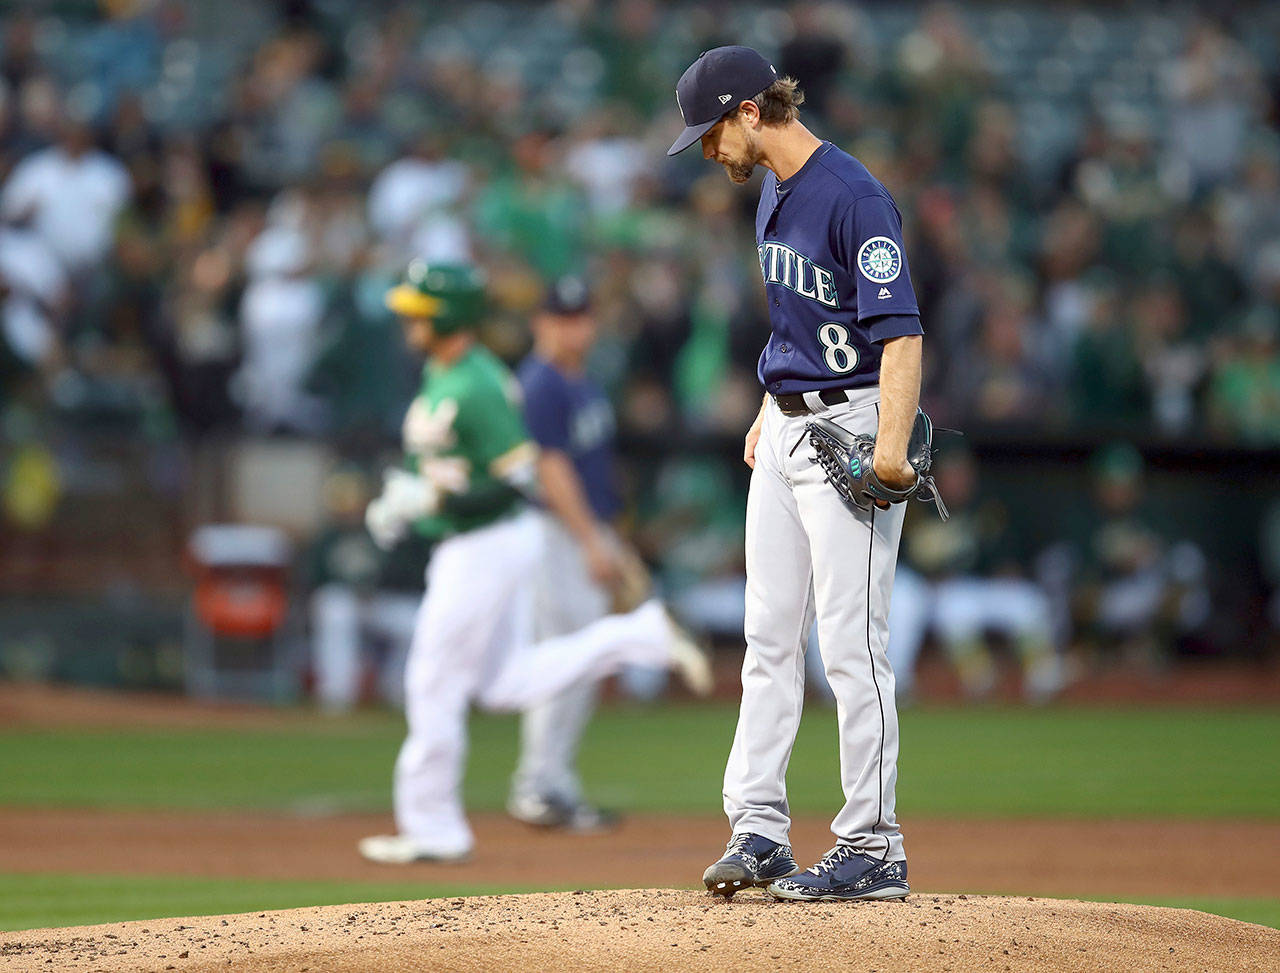 Seattle's Mike Leake (8) stands on the mound while Oakland's Stephen Piscotty rounds the bases after hitting a two-run home run in the first inning of the Athletics' 7-5 win over the Mariners on Friday in Oakland, California. (AP Photo/Ben Margot)